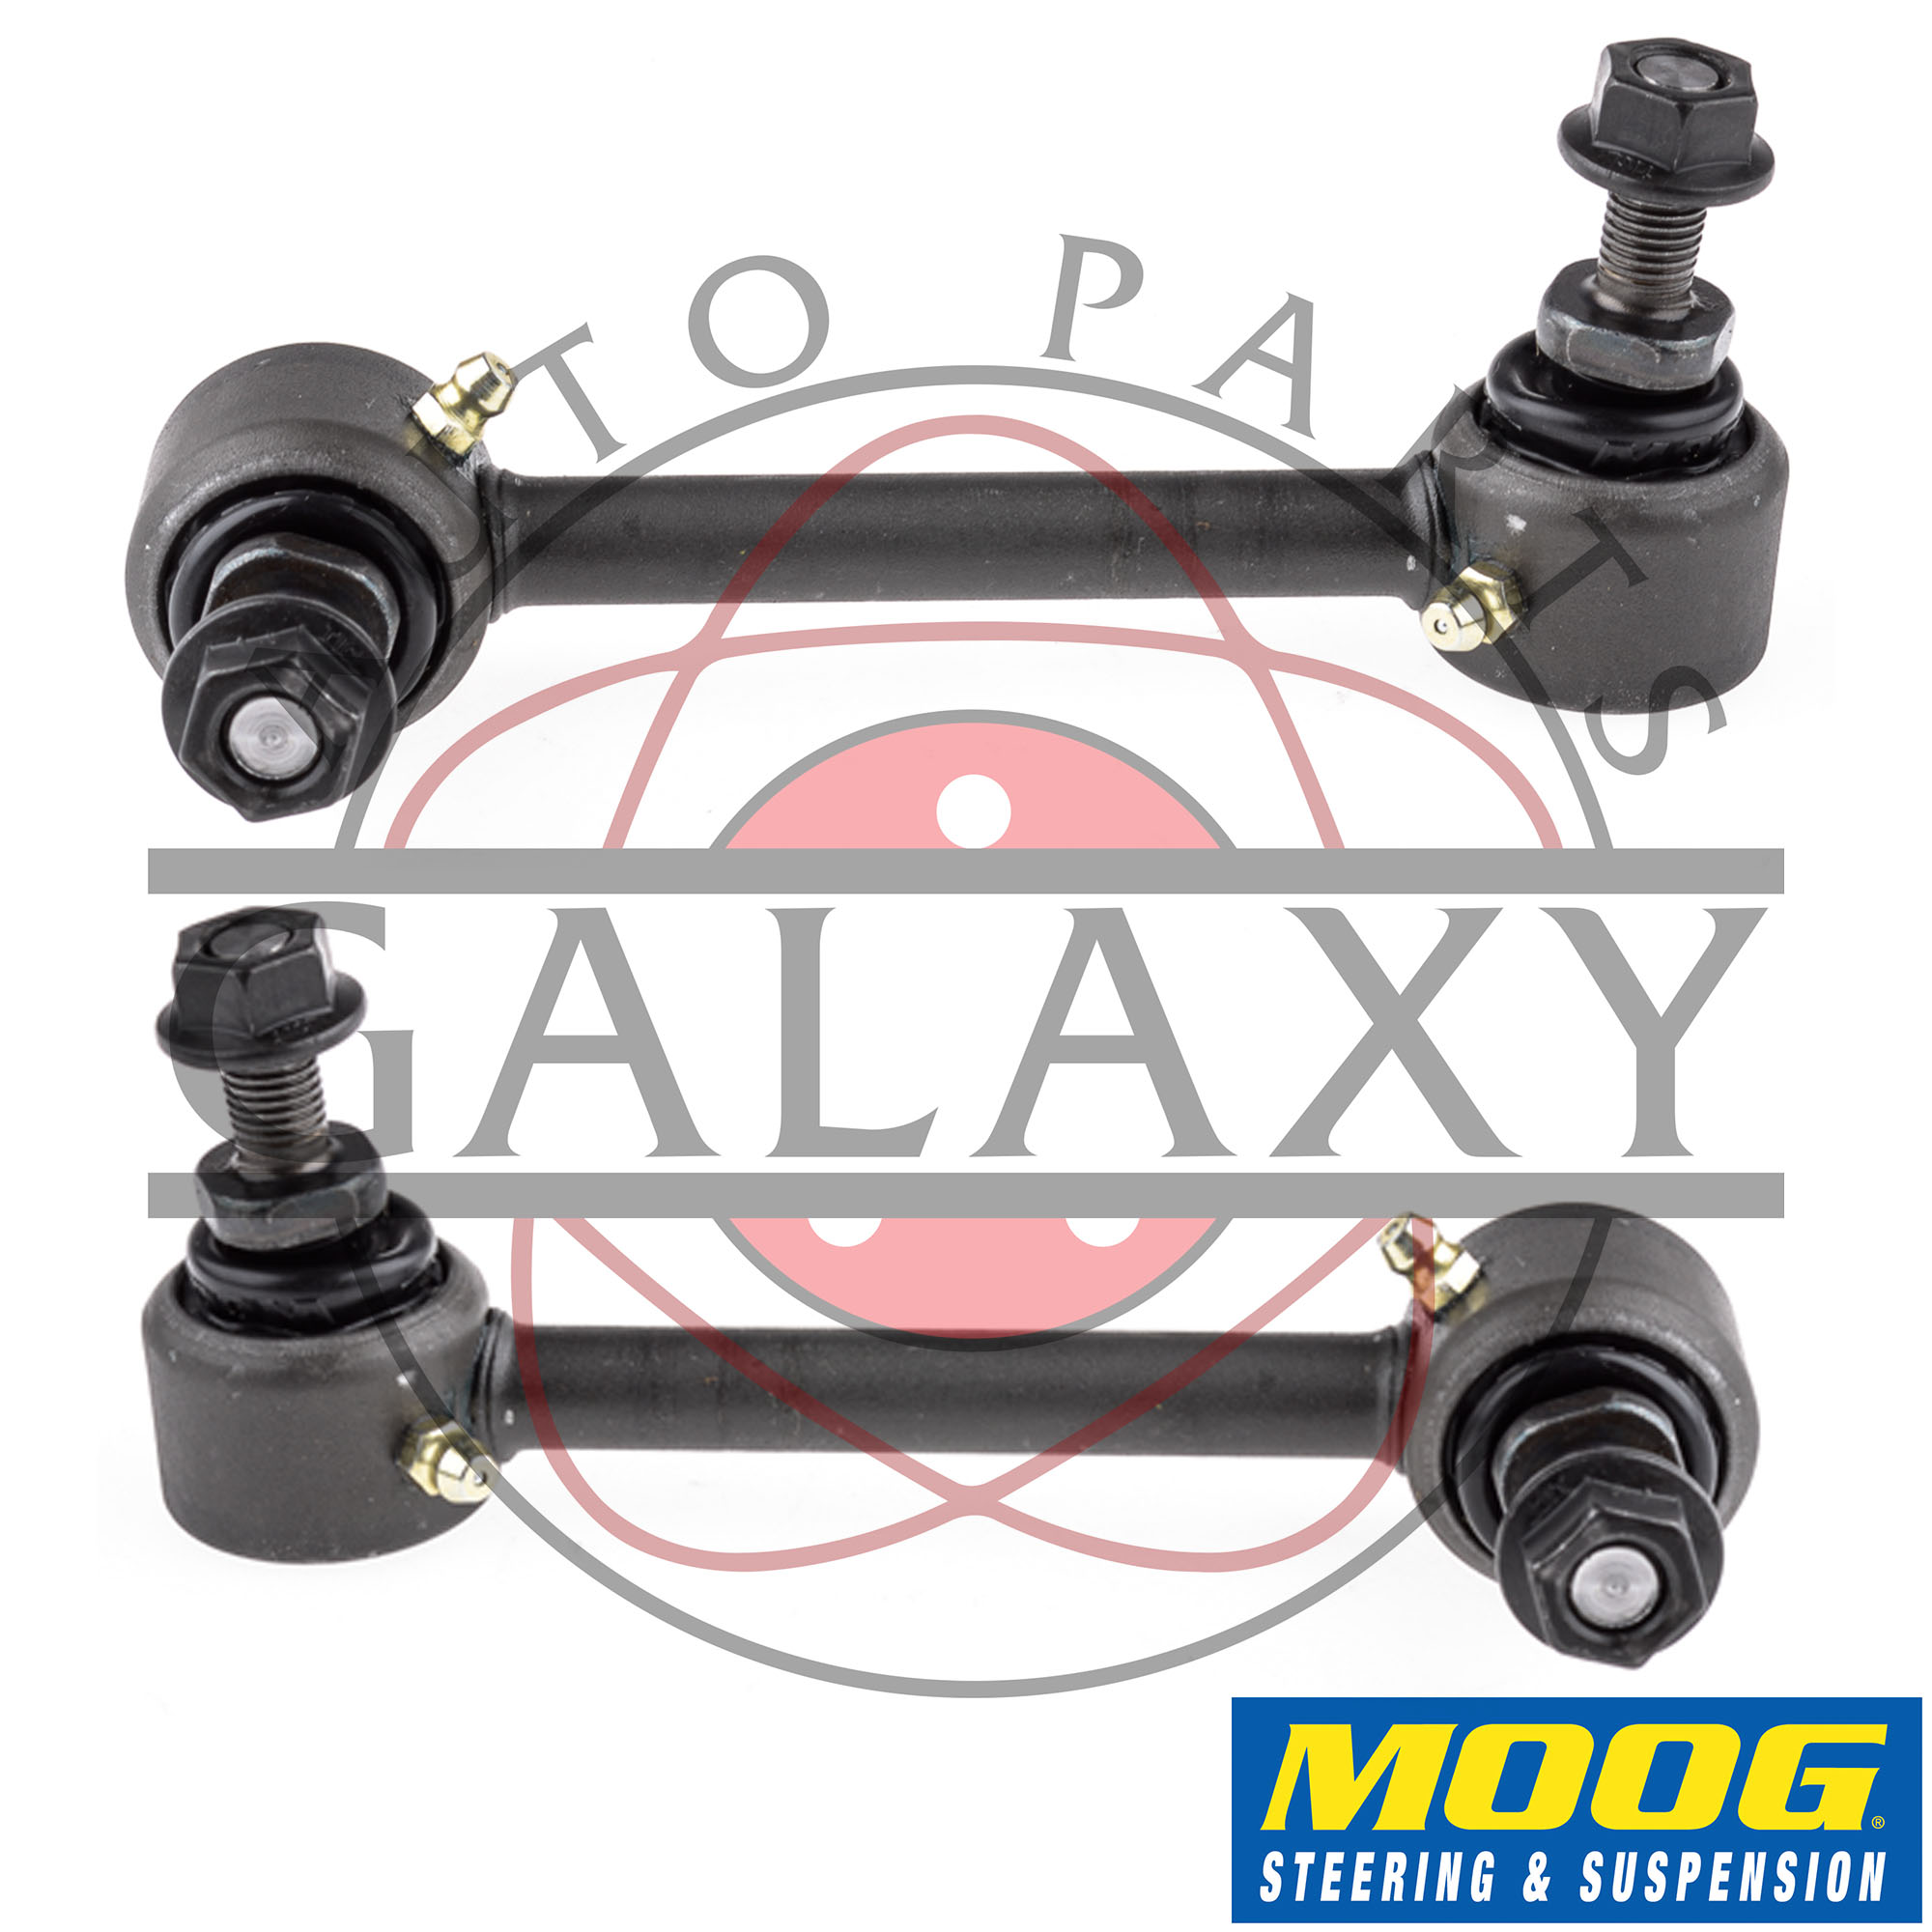 Honda Prelude 1997 Stabilizer Bar Links: Moog New Replacement Complete Rear Sway Bar Links Pair For